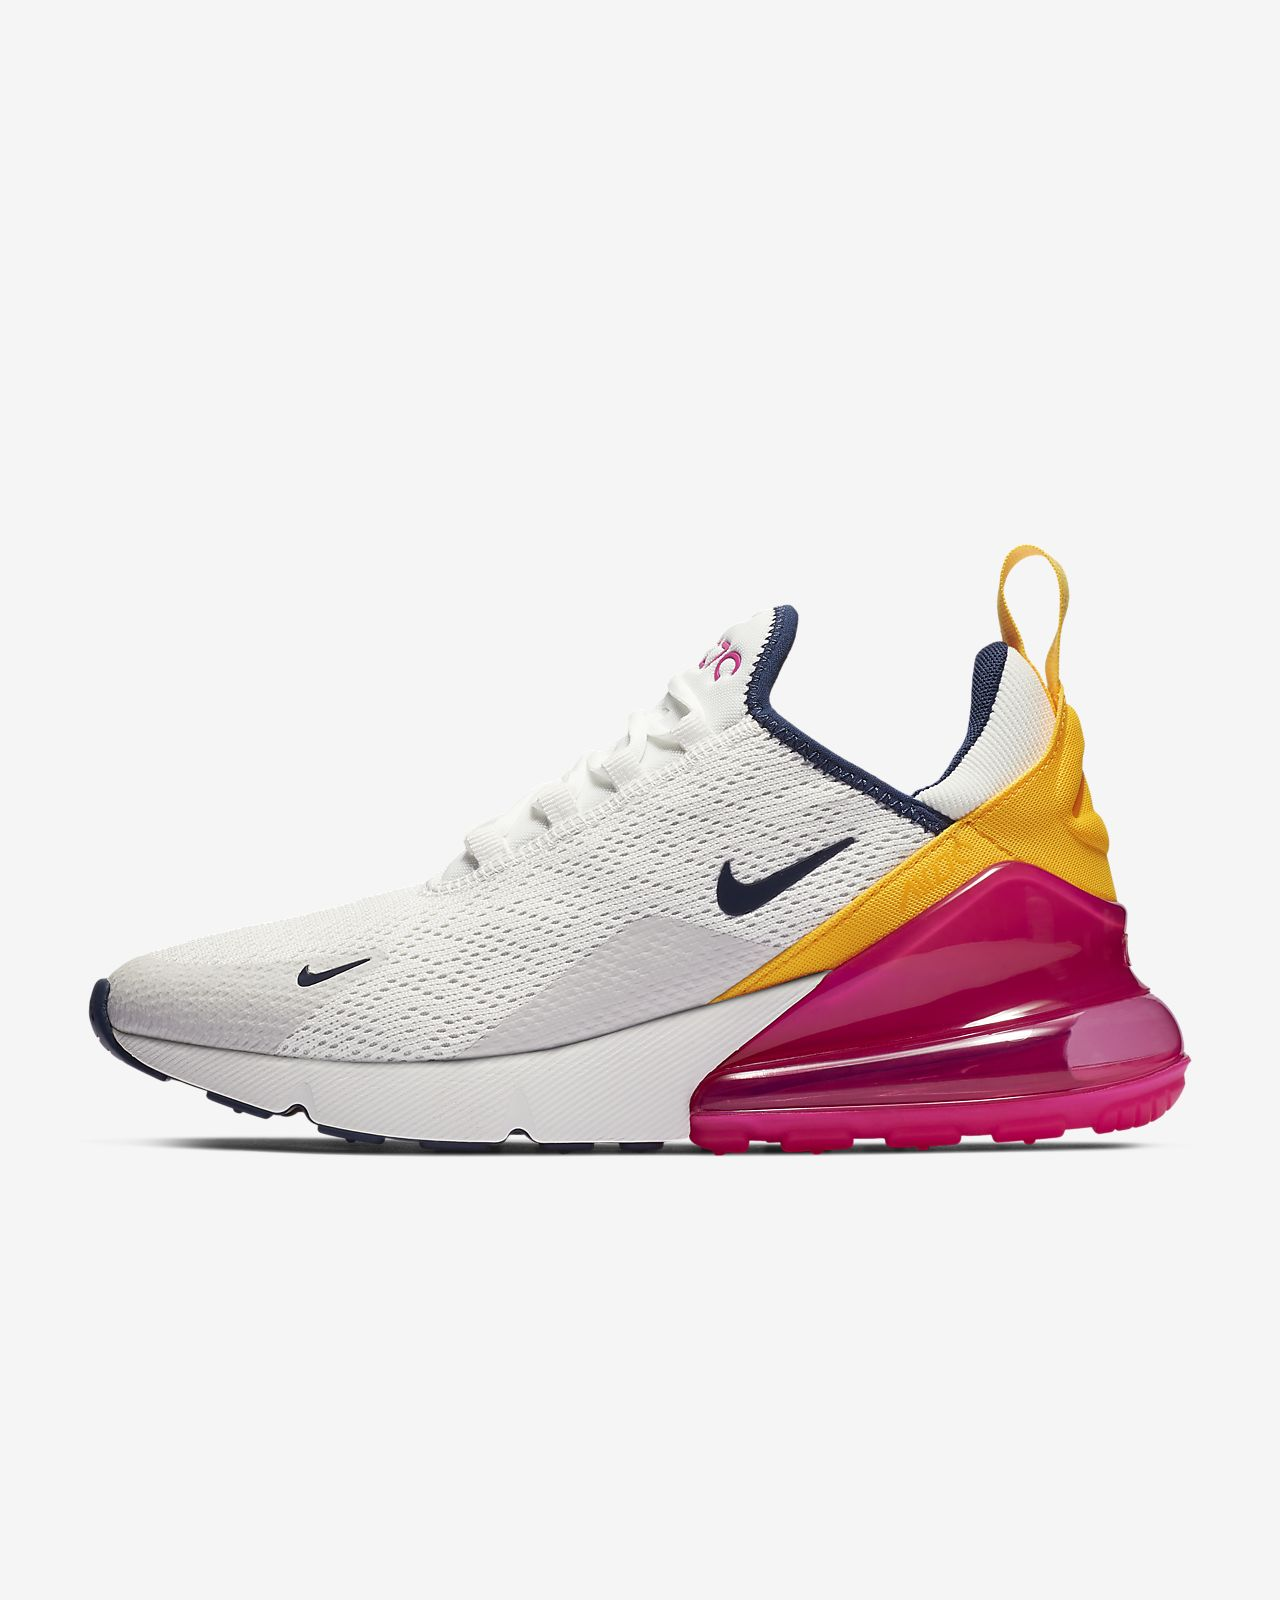 big sale 7952d 74ddd Nike Air Max 270 Premium